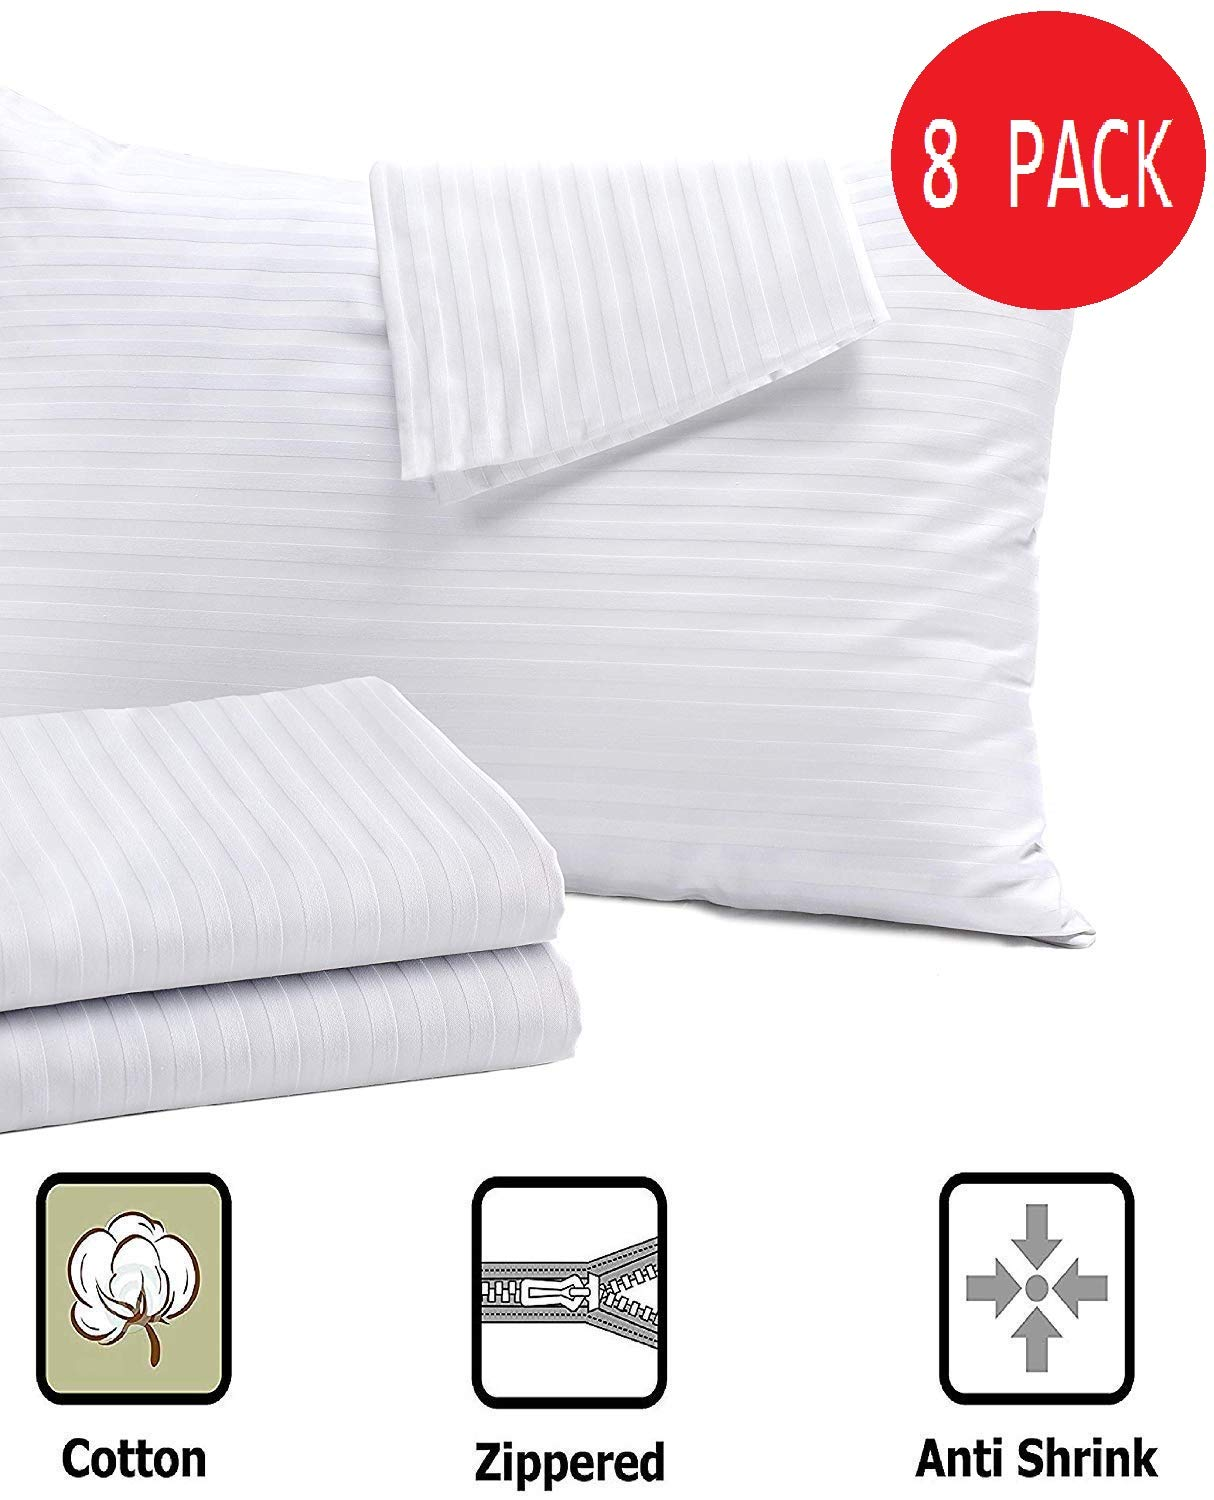 Niagara Sleep Solution 8 Pack Pillow Protectors Standard 20x26 Inches ❤ Life Time Replacement ❤ 100% Cotton Sateen High Thread Count 400 Style Standard Zippered White Hotel Quality Covers Cases